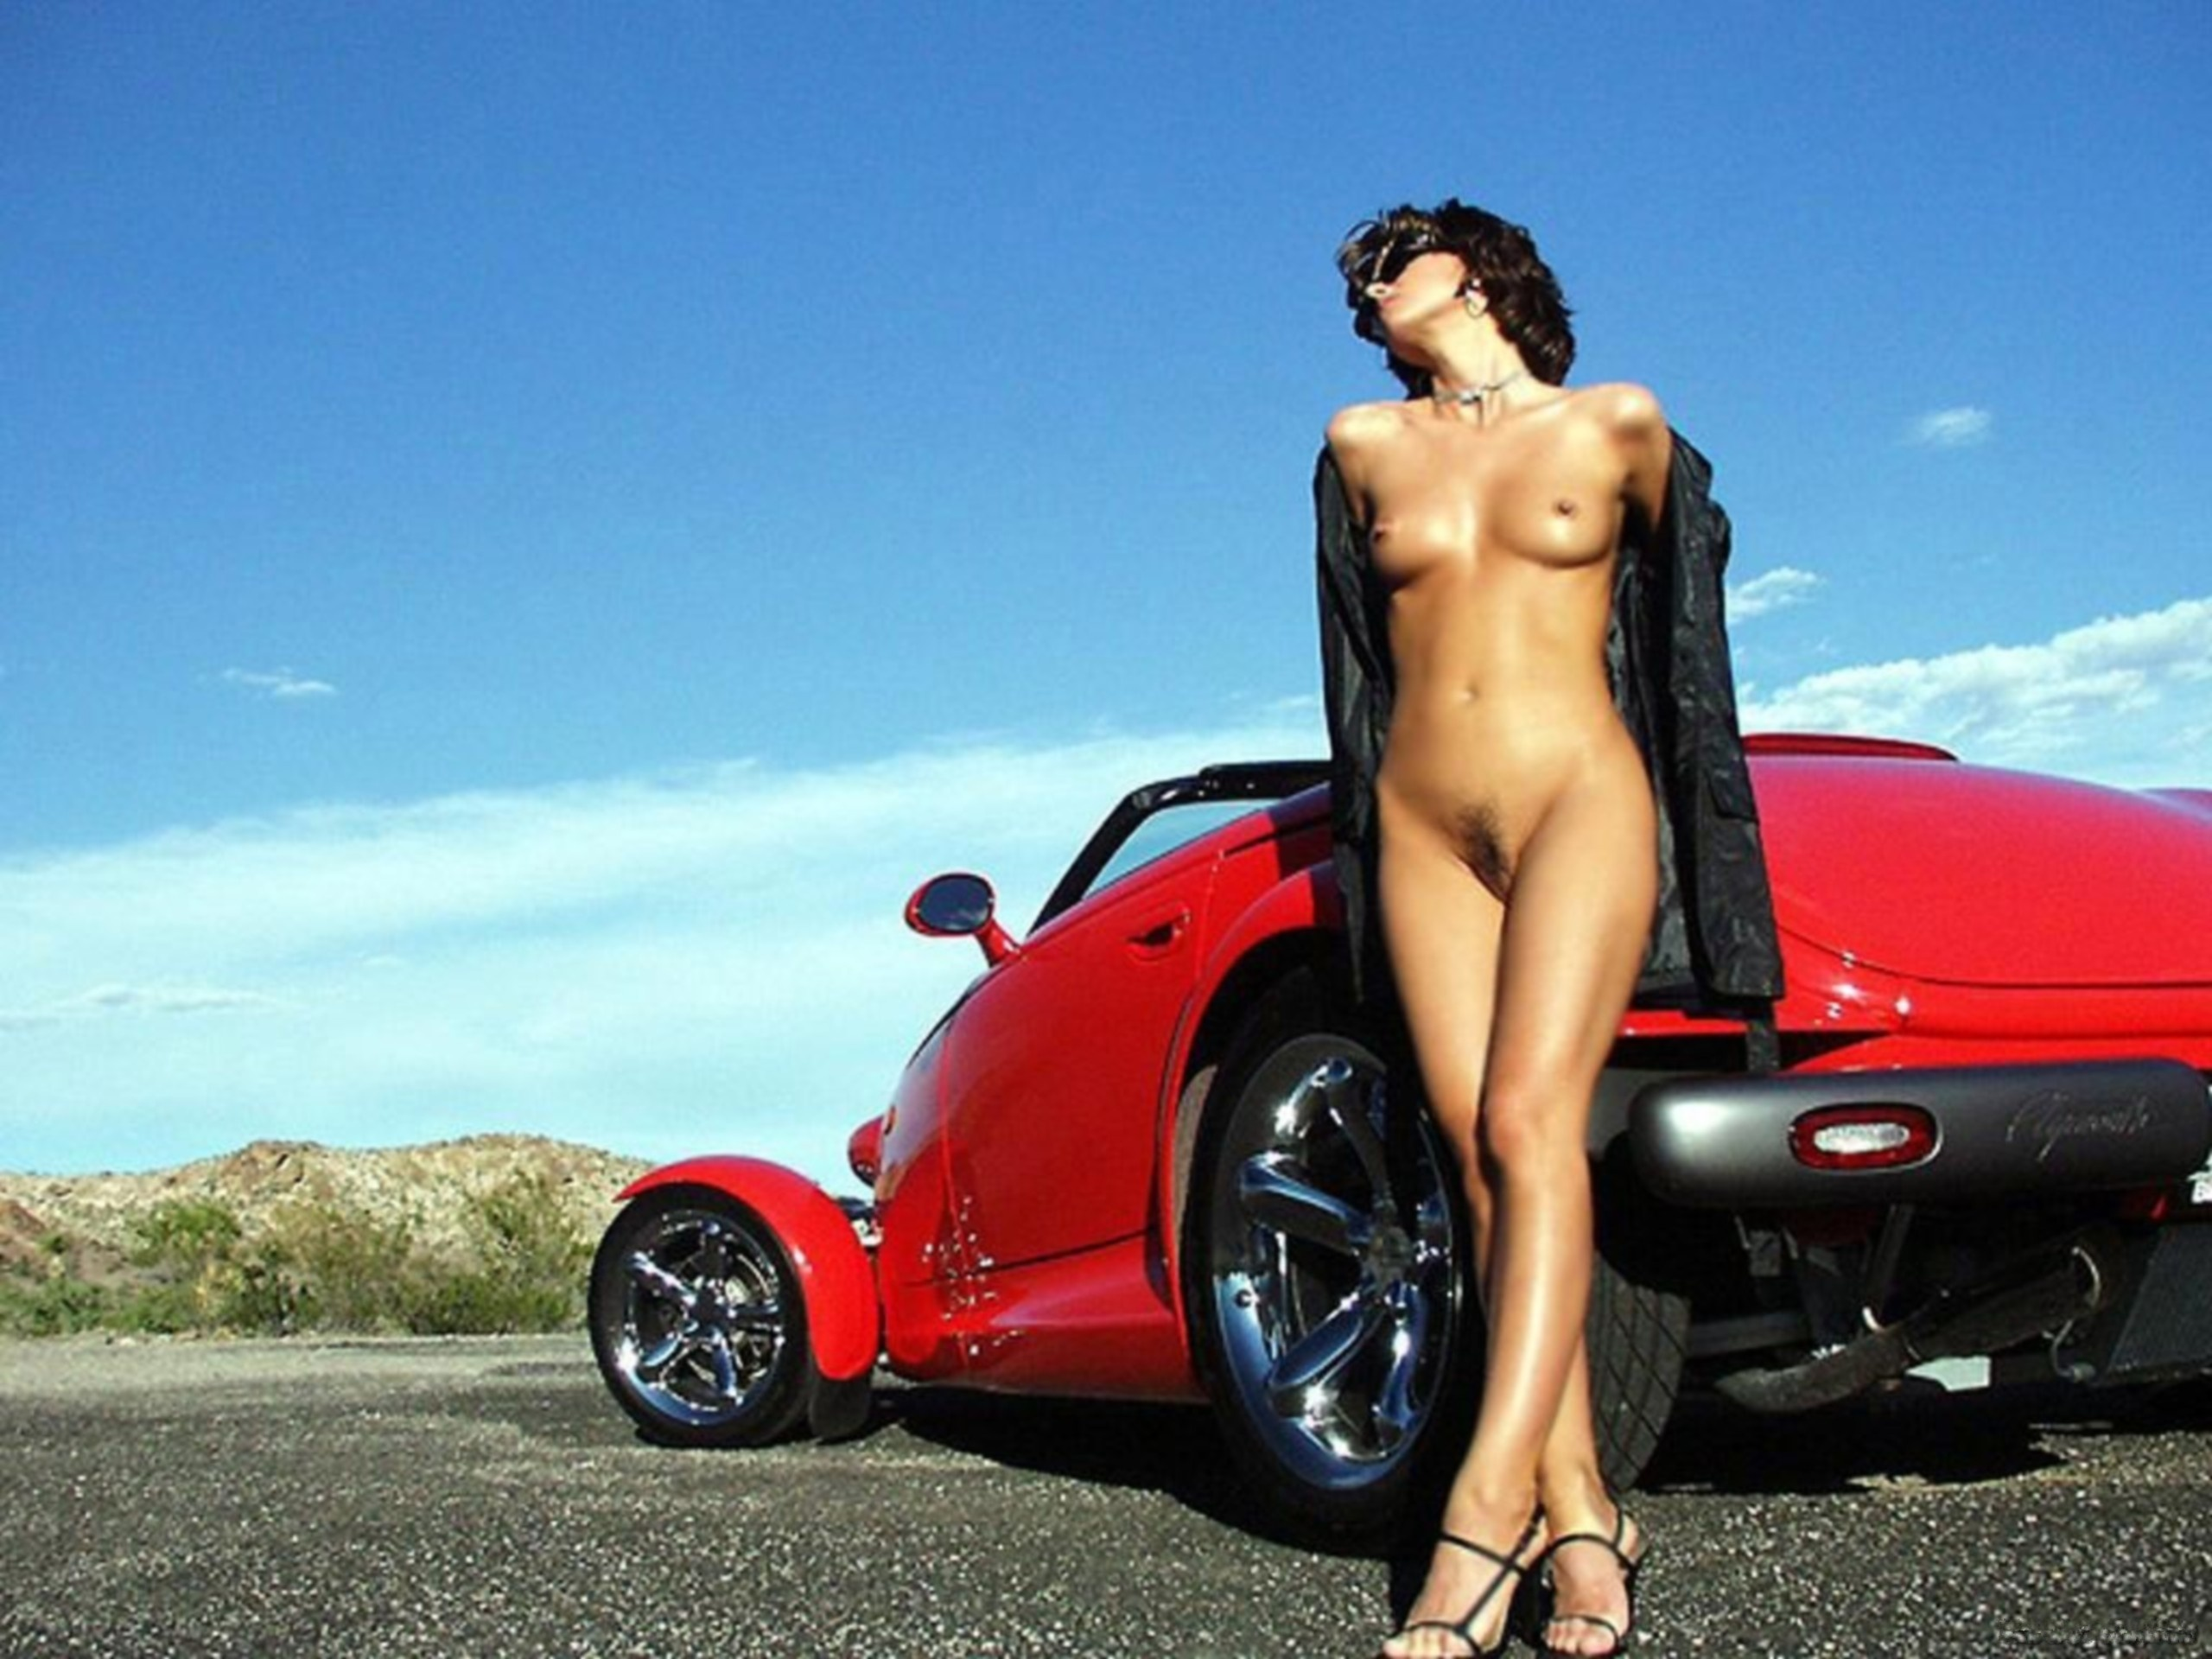 lesbian-sex-naked-women-with-fancy-cars